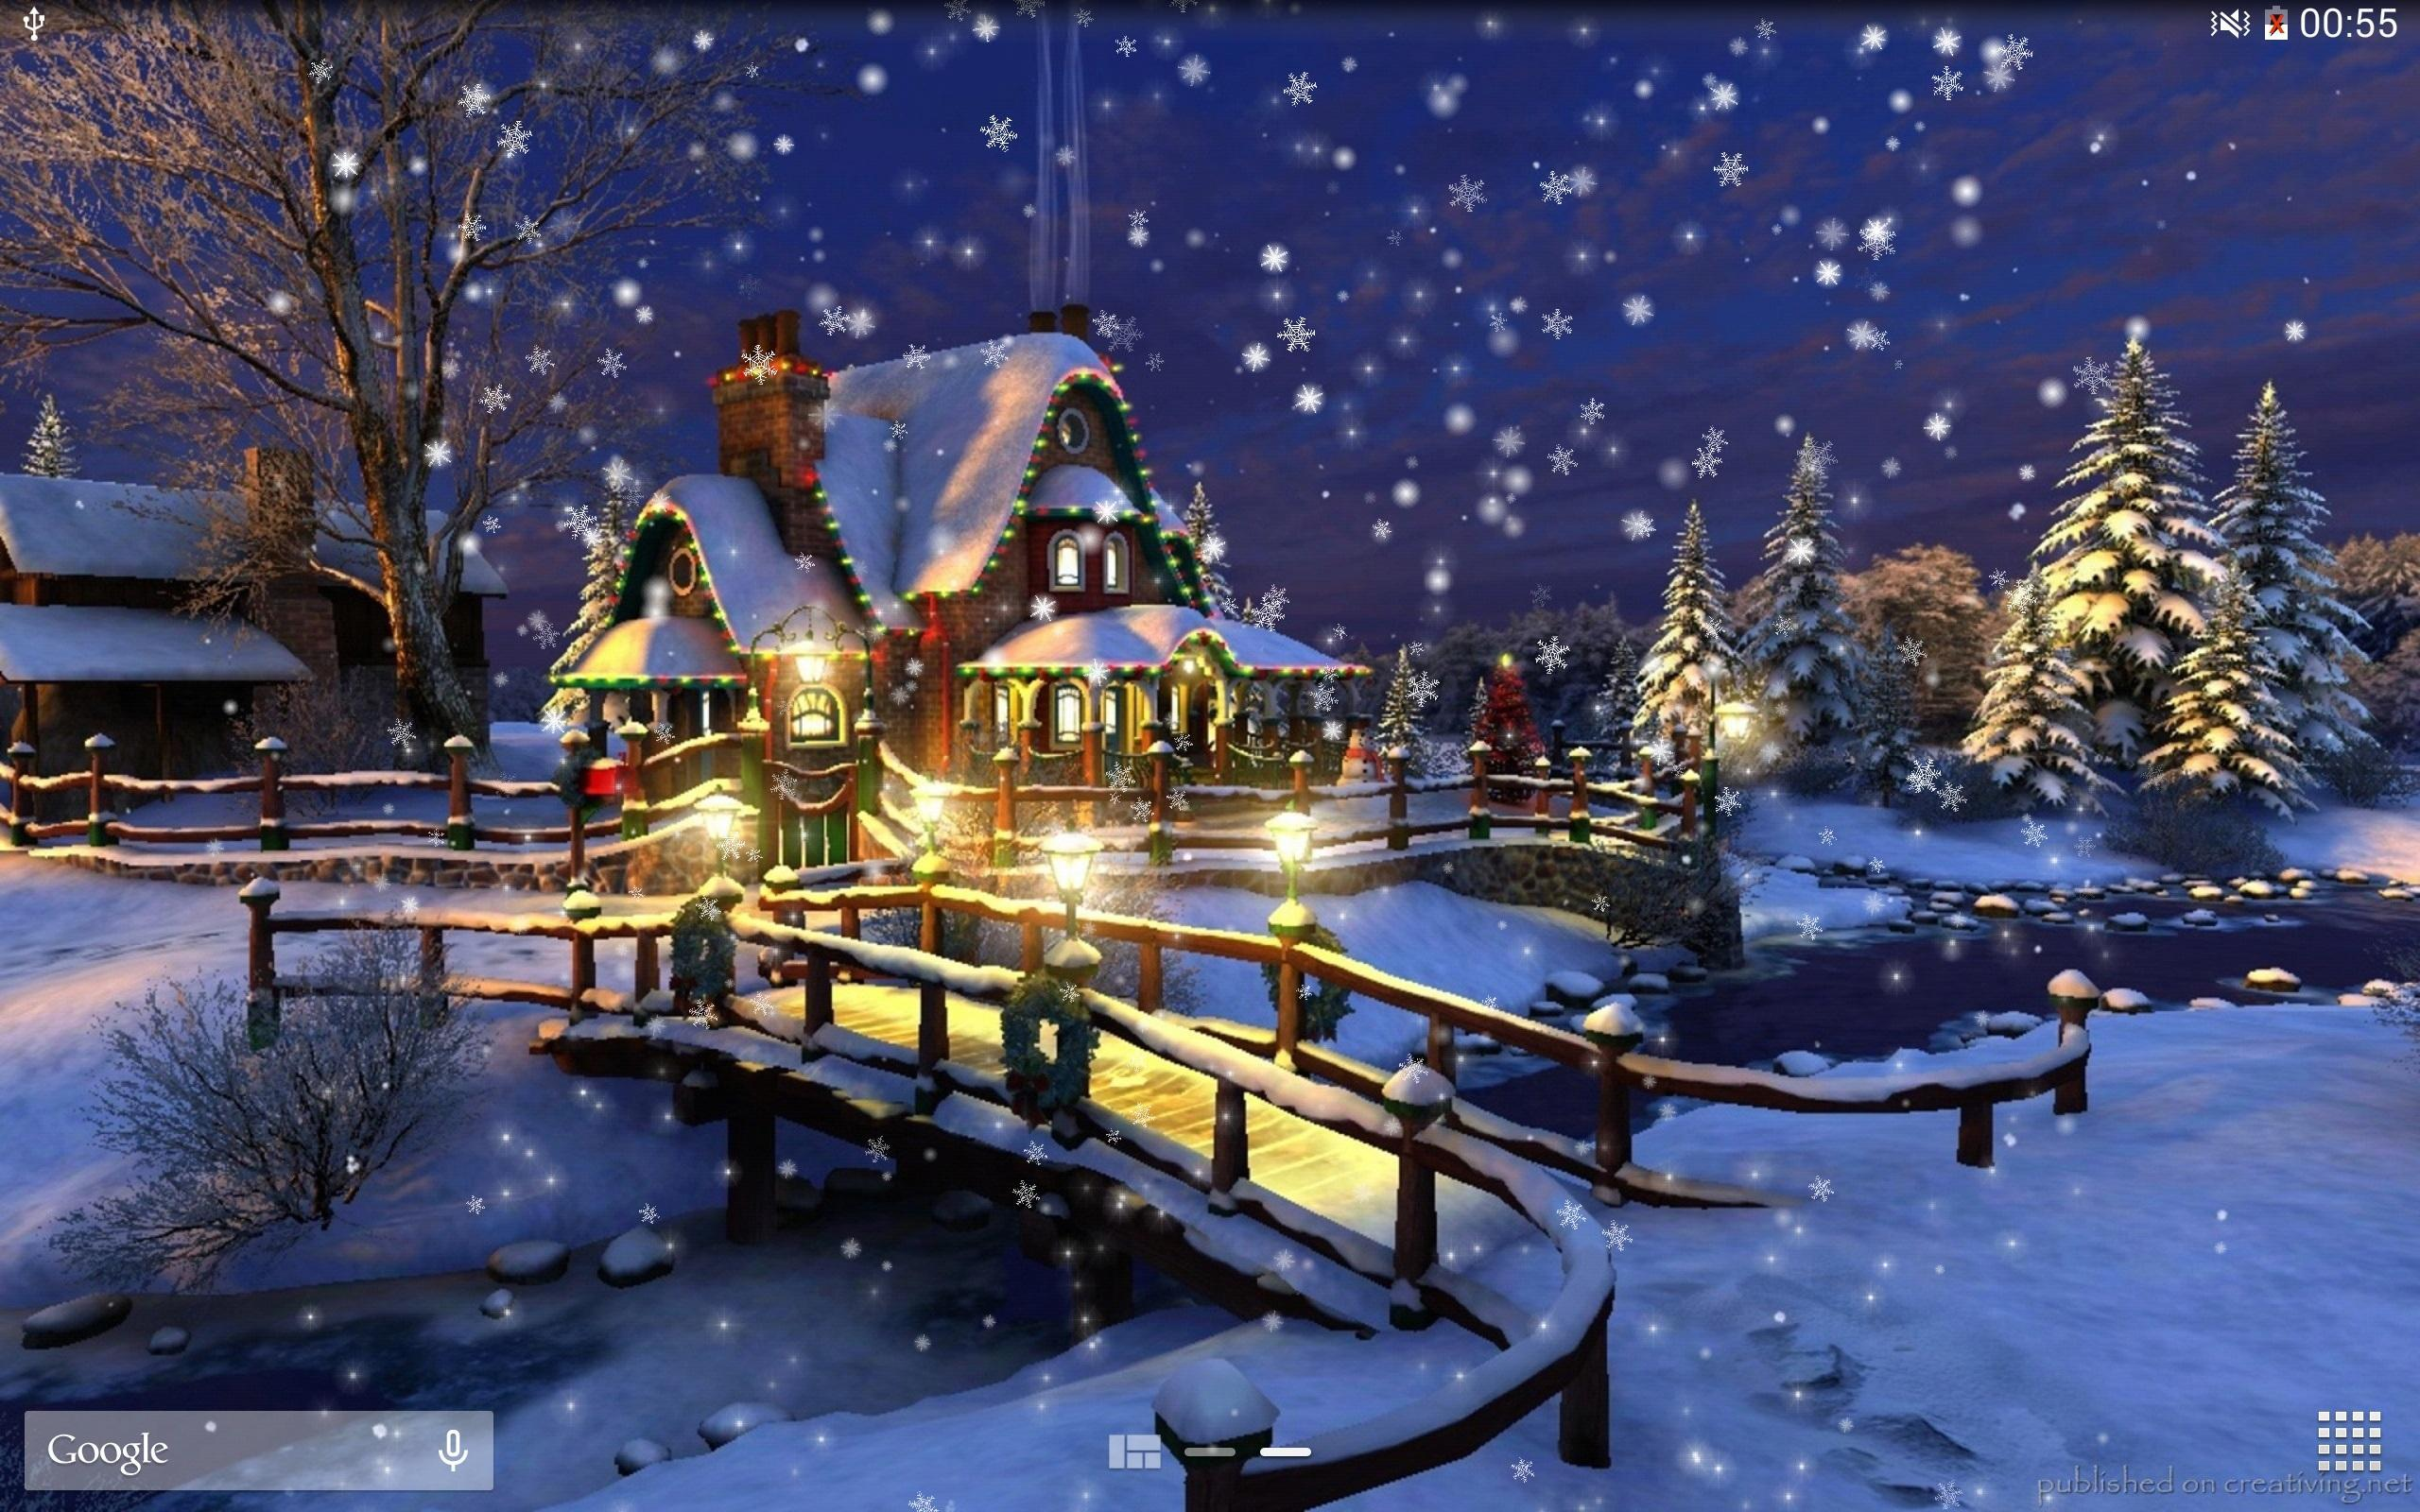 Snow Night City Live Wallpaper For Android Apk Download